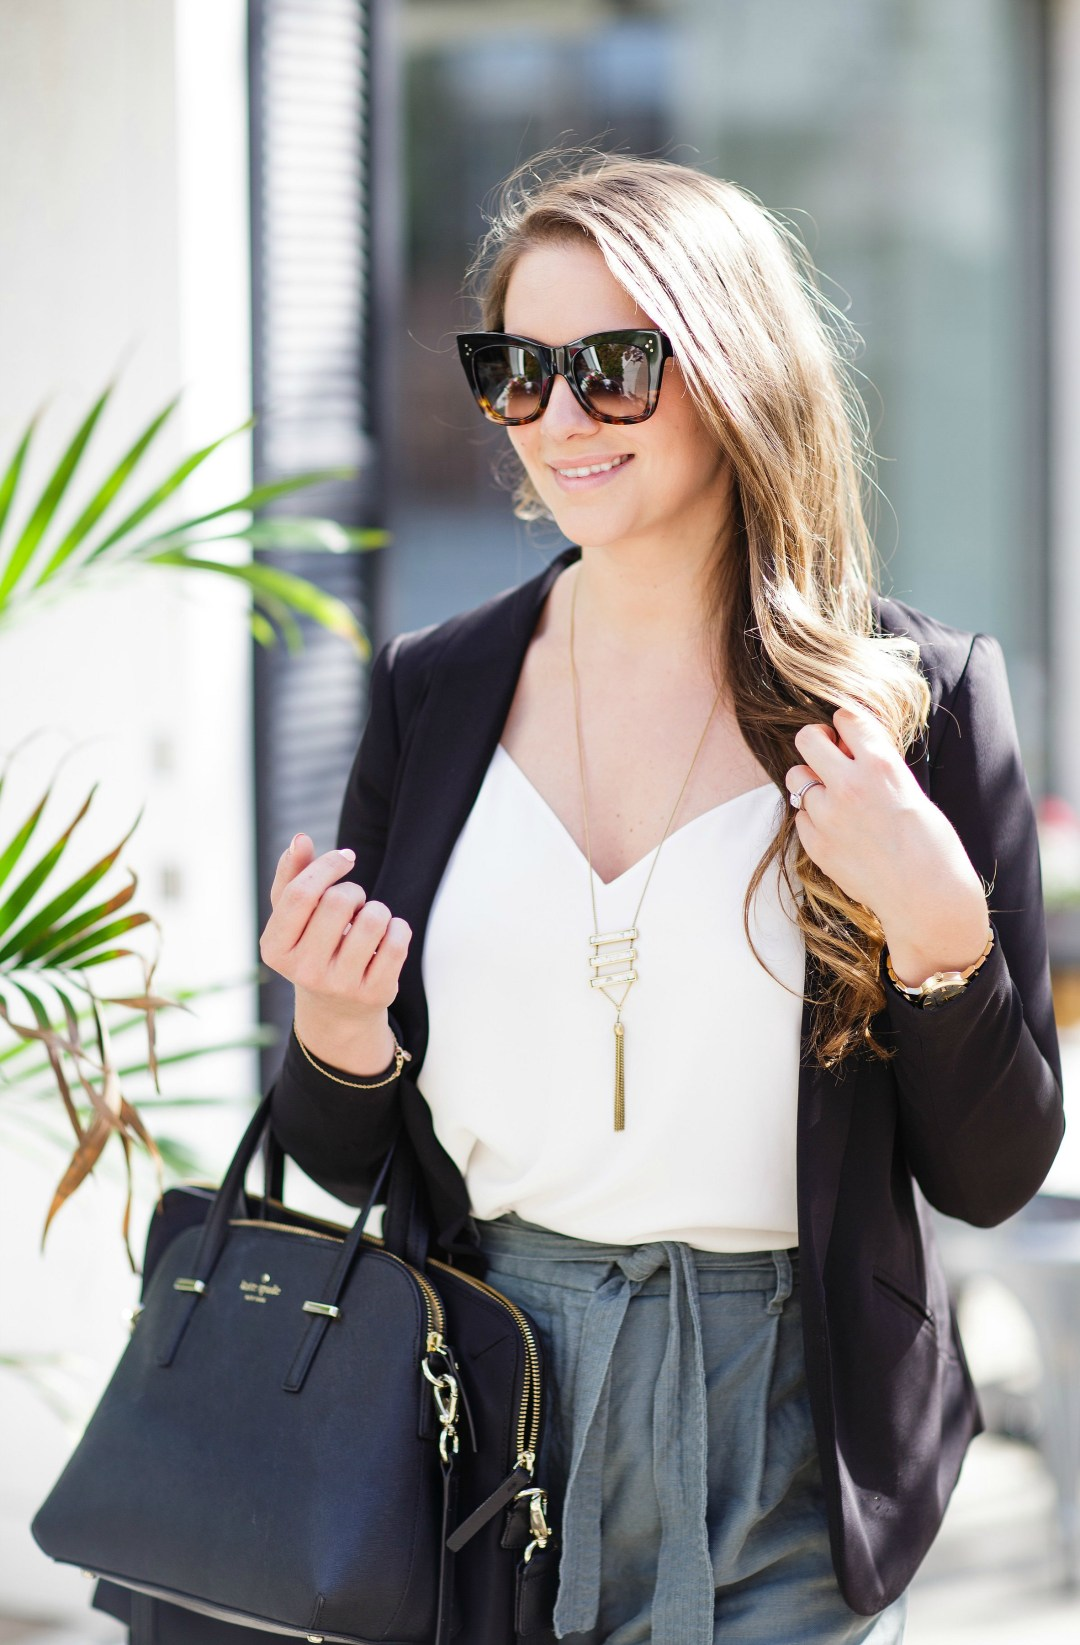 working-girl-office-outfit-wide-leg-pants-black-blazer-celine-sunglasses-kate-spade-laptop-bag-rosecitystyleguide-canadian-blogger-10